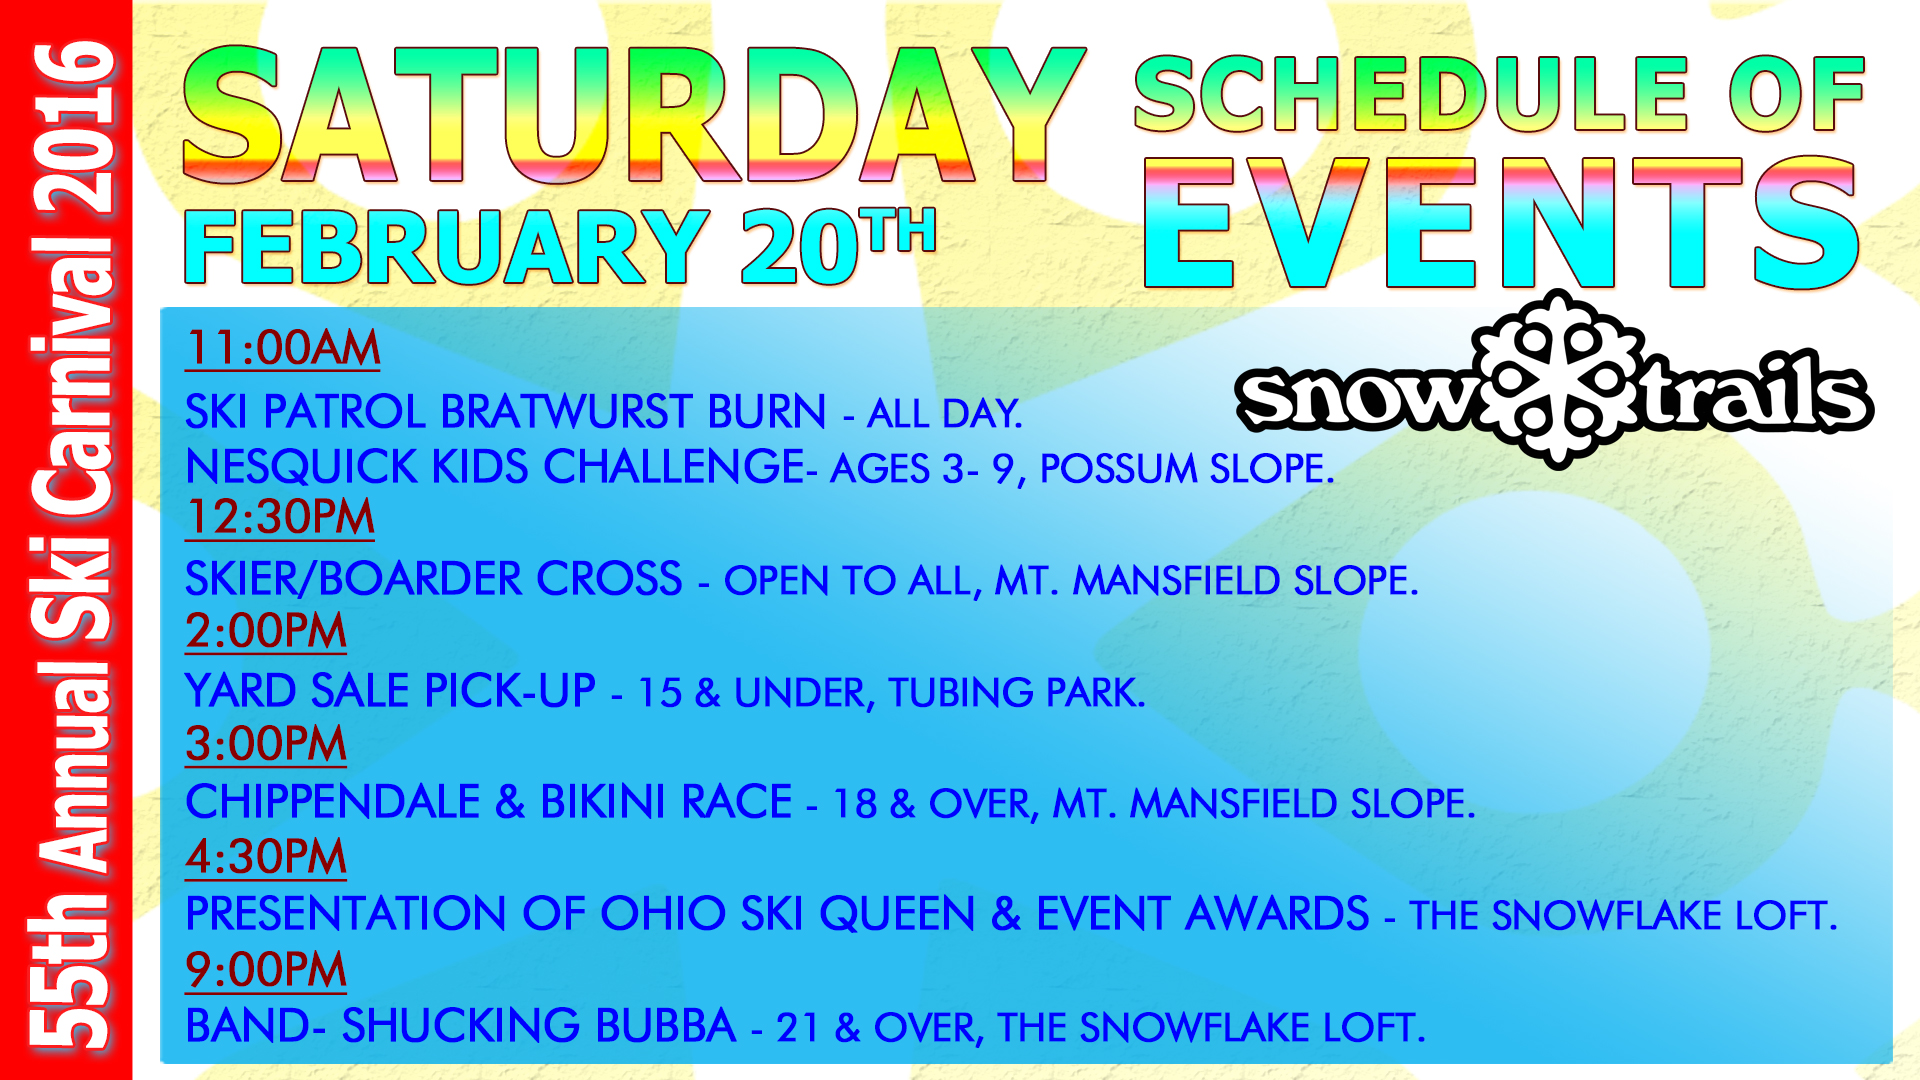 55th Carnival Saturday, February 20th Schedule of Events